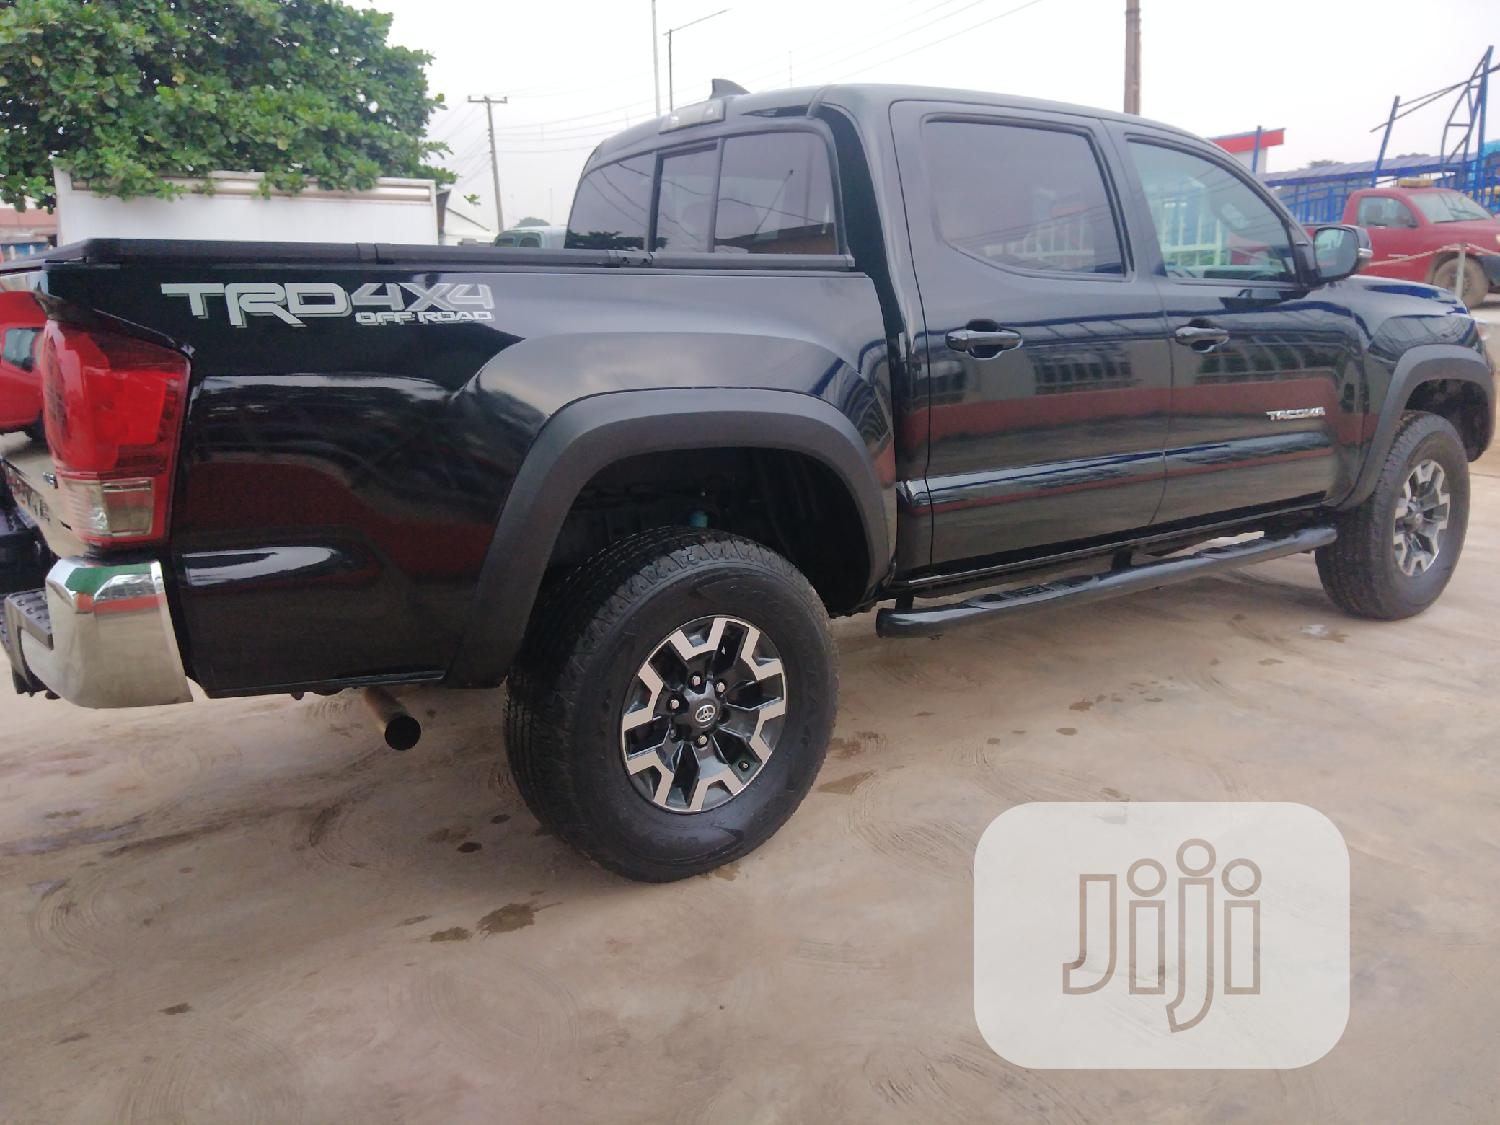 Archive: Toyota Tacoma 2016 4dr Double Cab Black